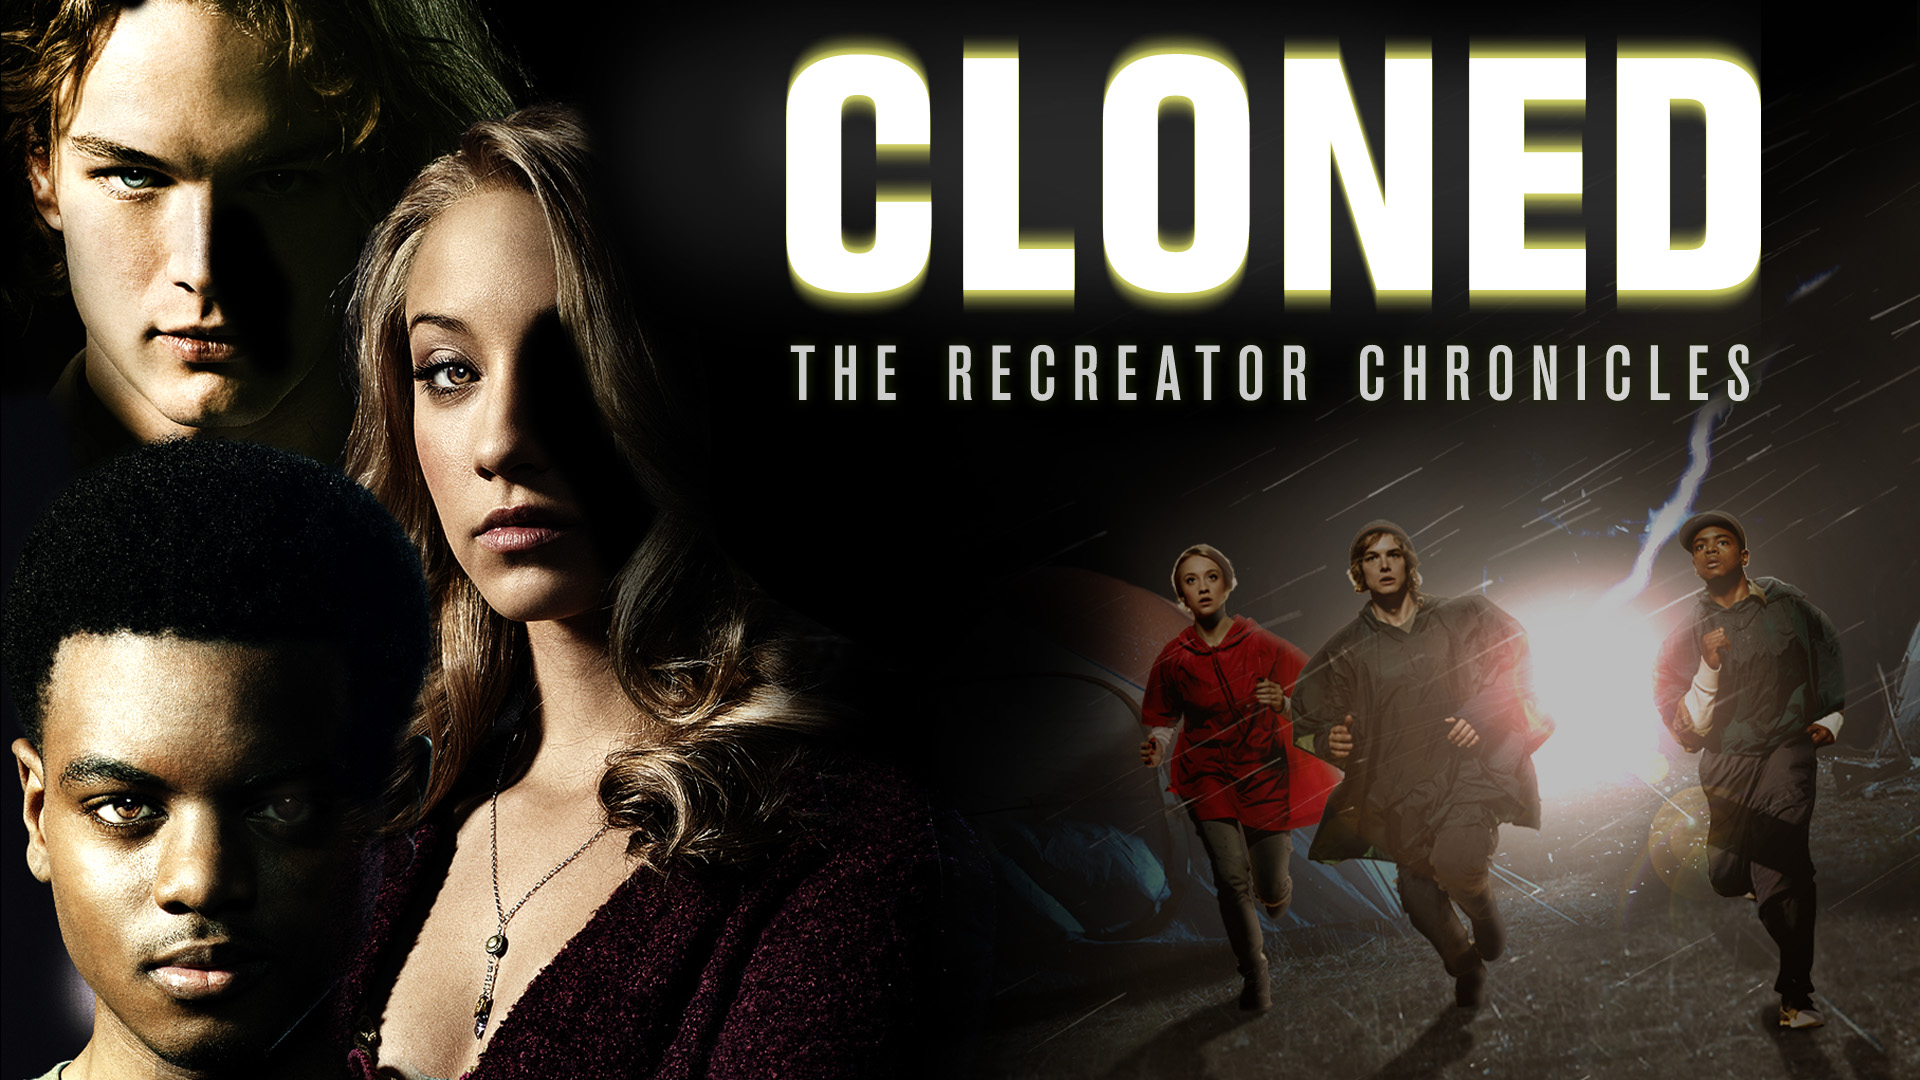 Cloned - The Recreator Chronicles